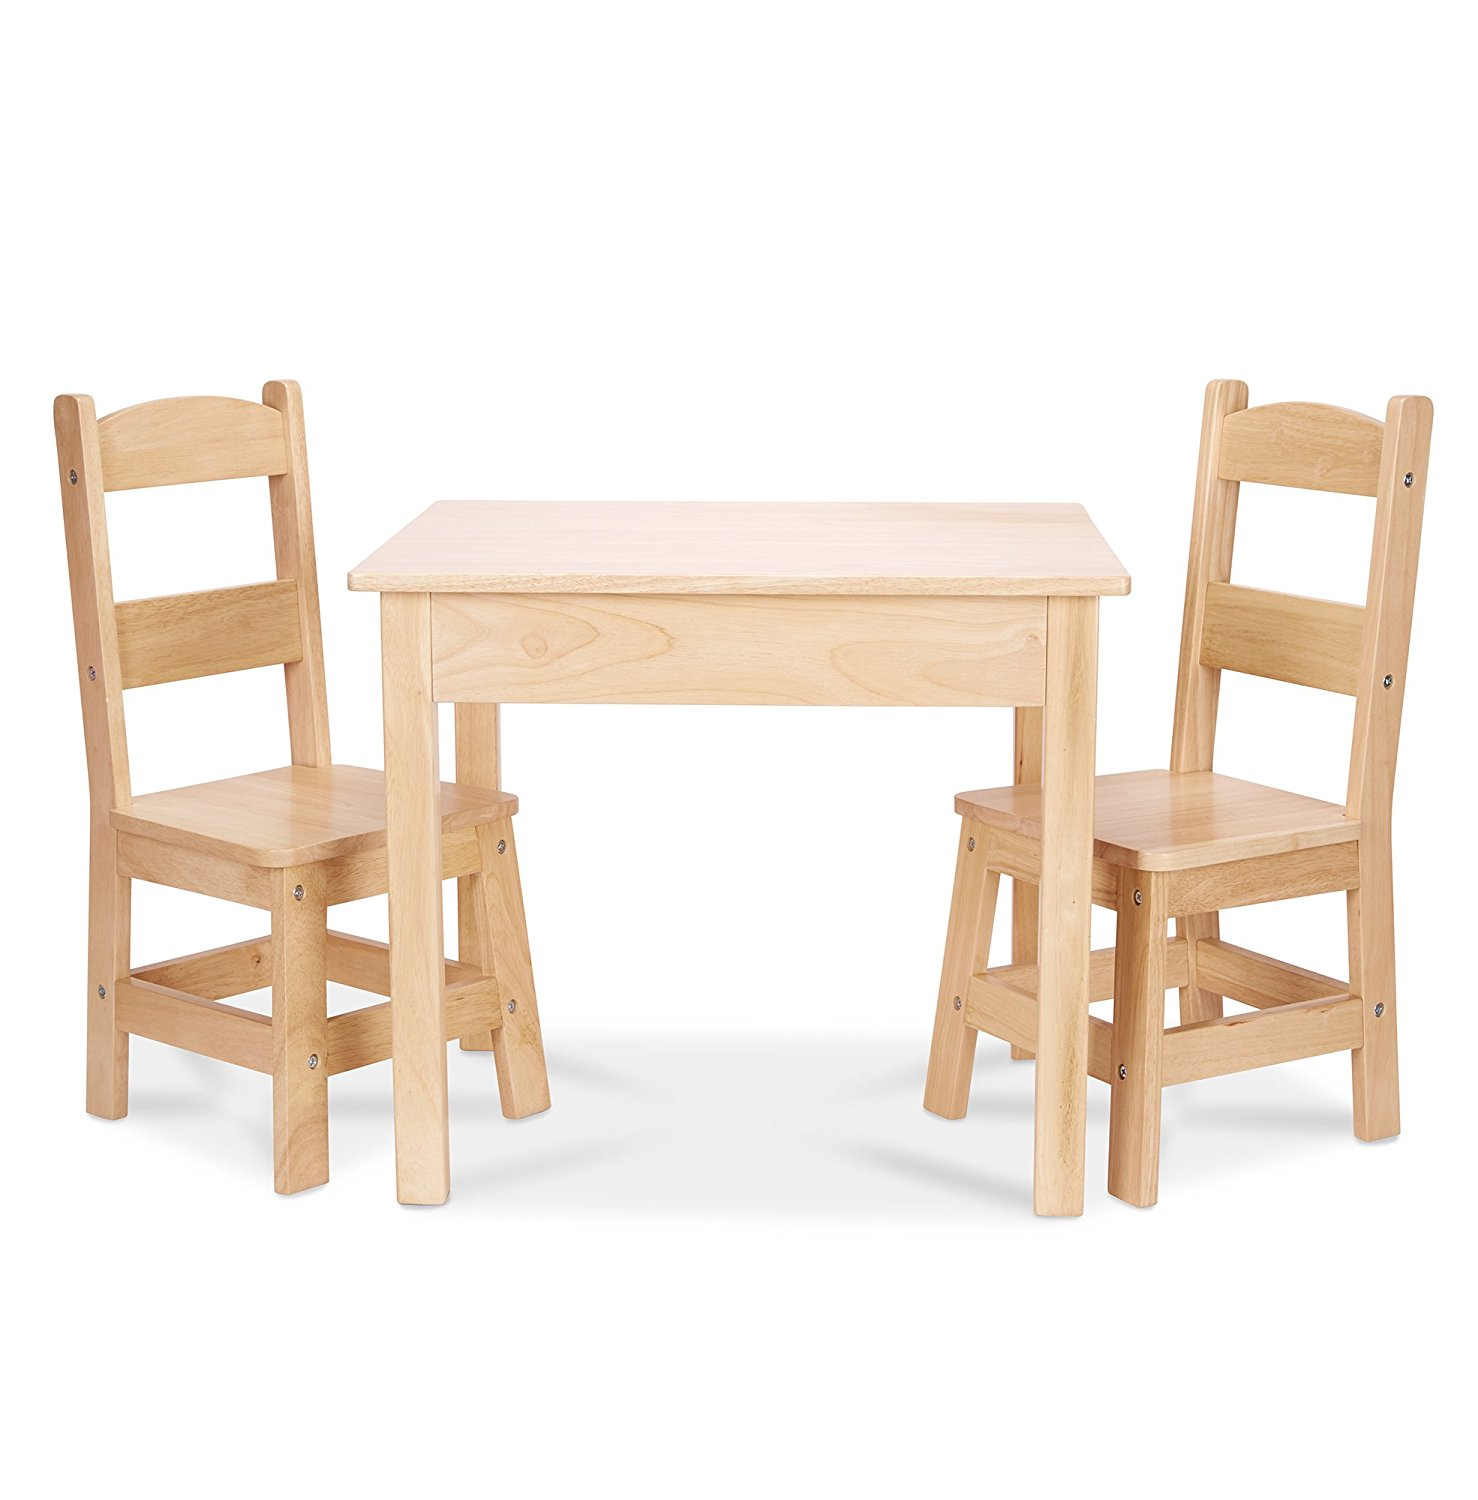 doug solid wood table and 2 chairs set light